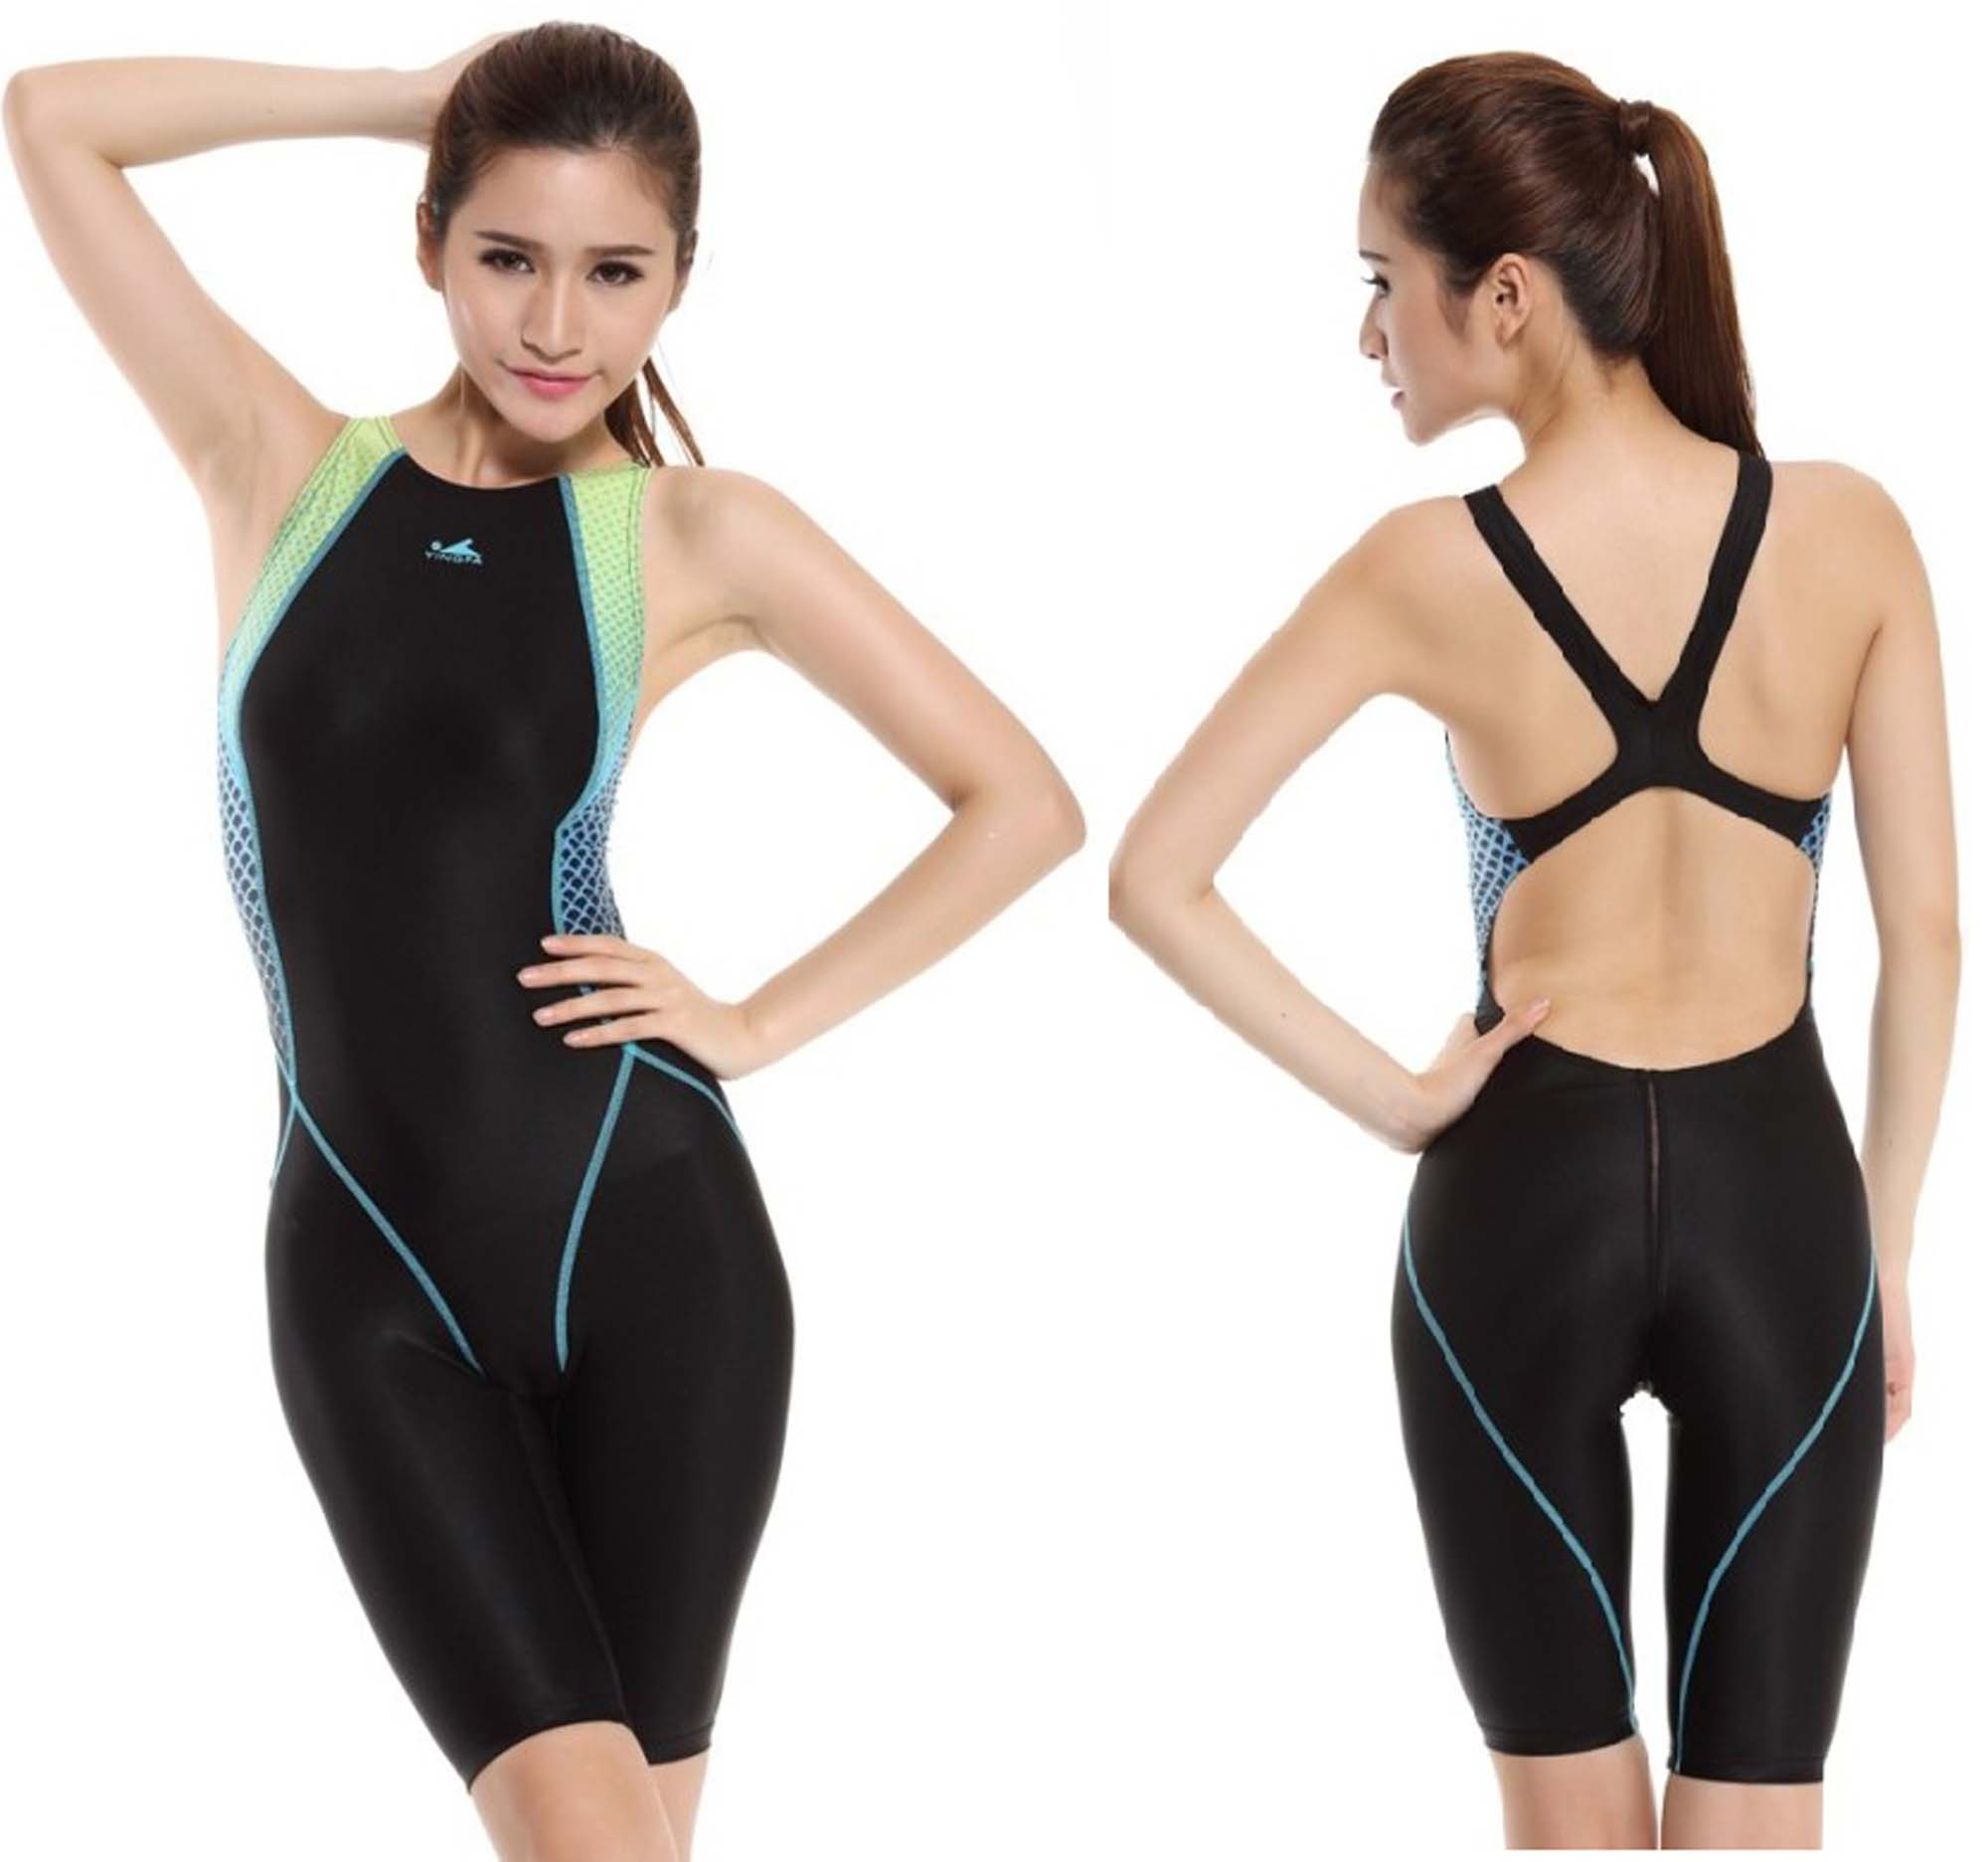 Kneeskin swimsuit women one piece swimsuit for racing and